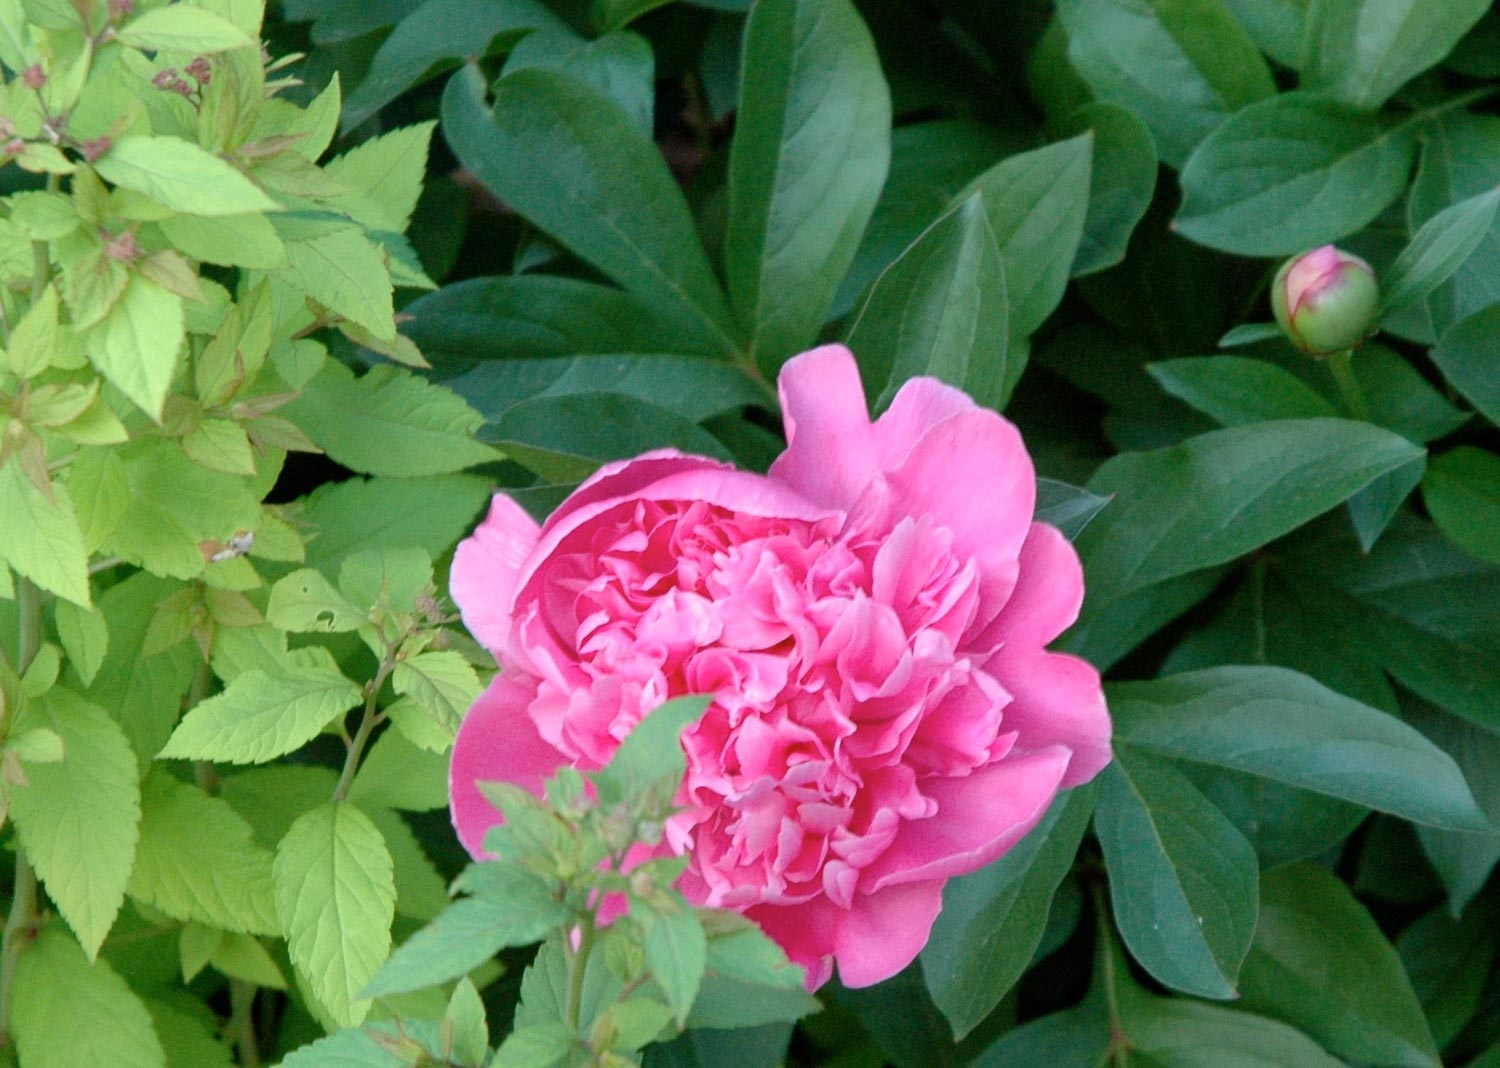 iowa peony, iowa garden consulting, iowa garden design, iowa garden ideas, iowa landscape consulting, iowa landscaping, iowa landscape design, iowa landscape services, iowa landscaping ideas, des moines landscaping, des moines landscape design, des moines landscape services, des moines landscaping ideas, red fern landscape design, red fern landscaping